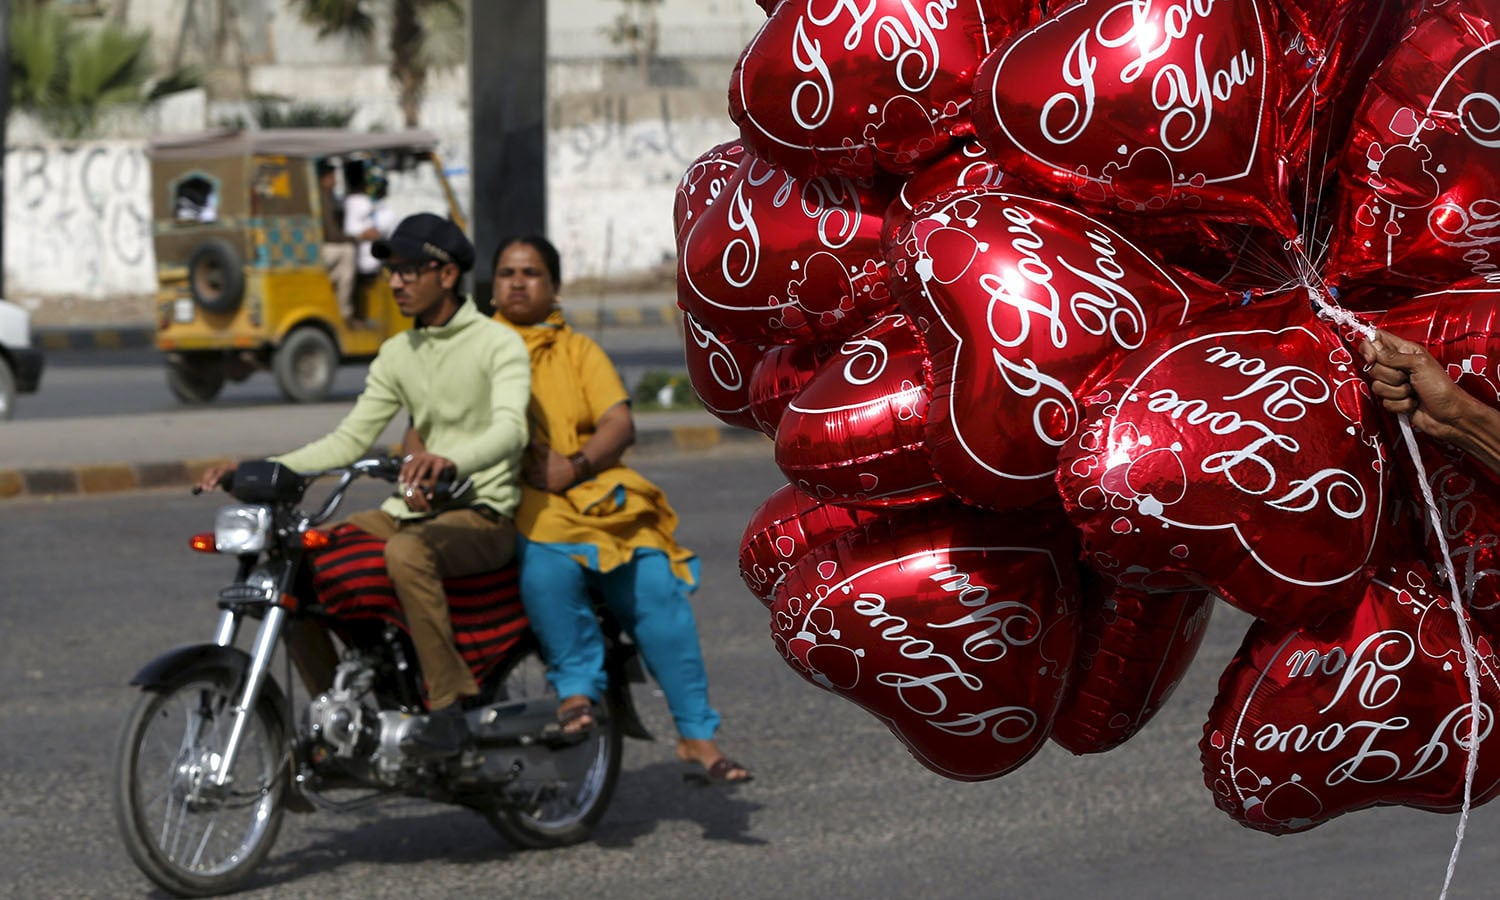 a couple on a motorcycle ride past a vendor selling heart shaped balloons on valentine 039 s day photo reuters